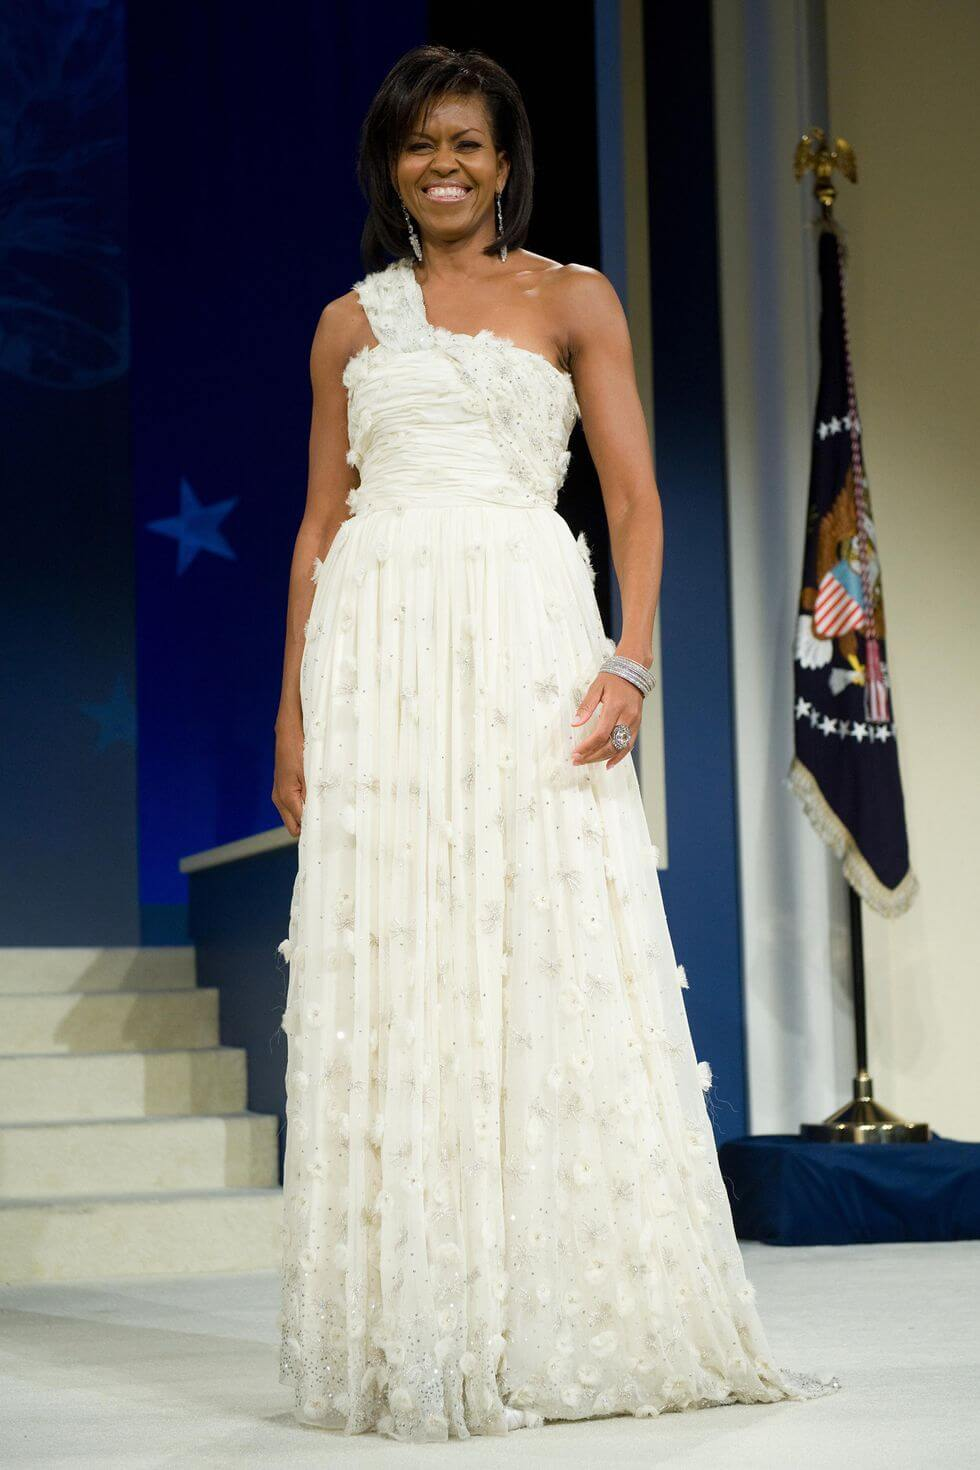 Michelle Obama Inaugural Ball Dress Getty Images